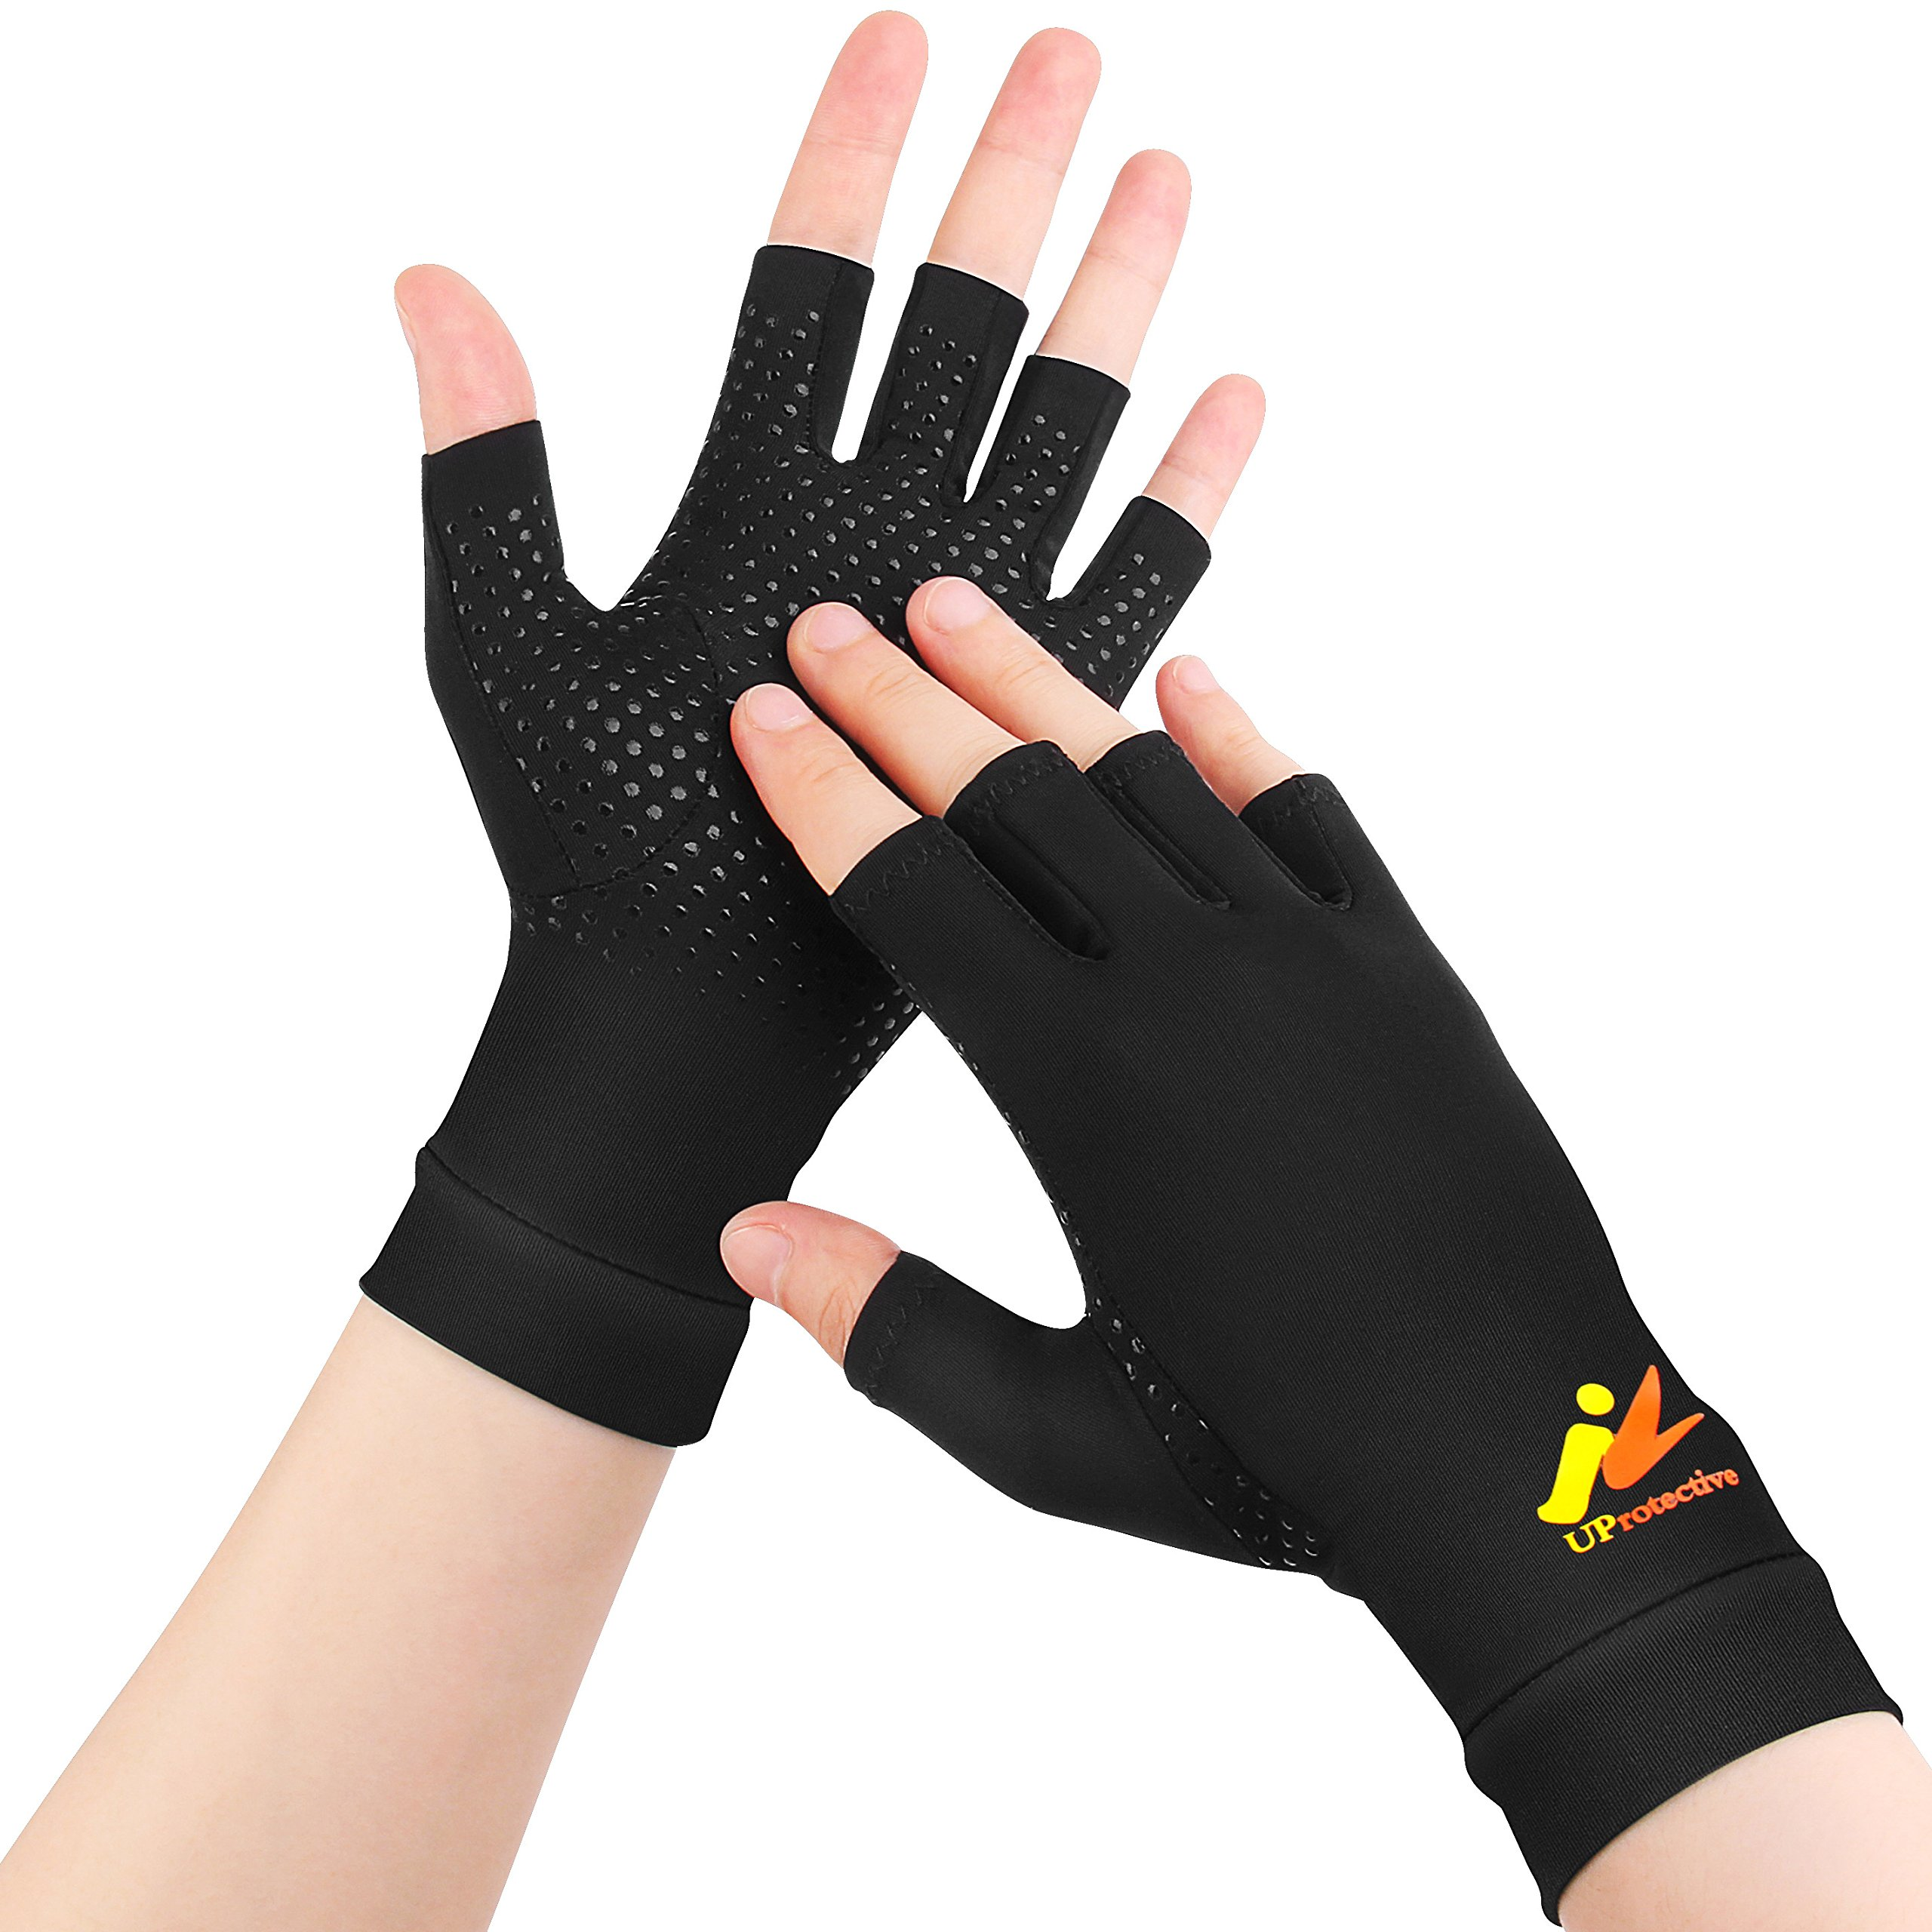 UProtective Arthritis Gloves Highest Copper Material Compression Relieve Pain Support for For Carpal Tunnel/Computer Typing/Writing/Dailywork/Tendonitis Fingerless Gloves (Small)